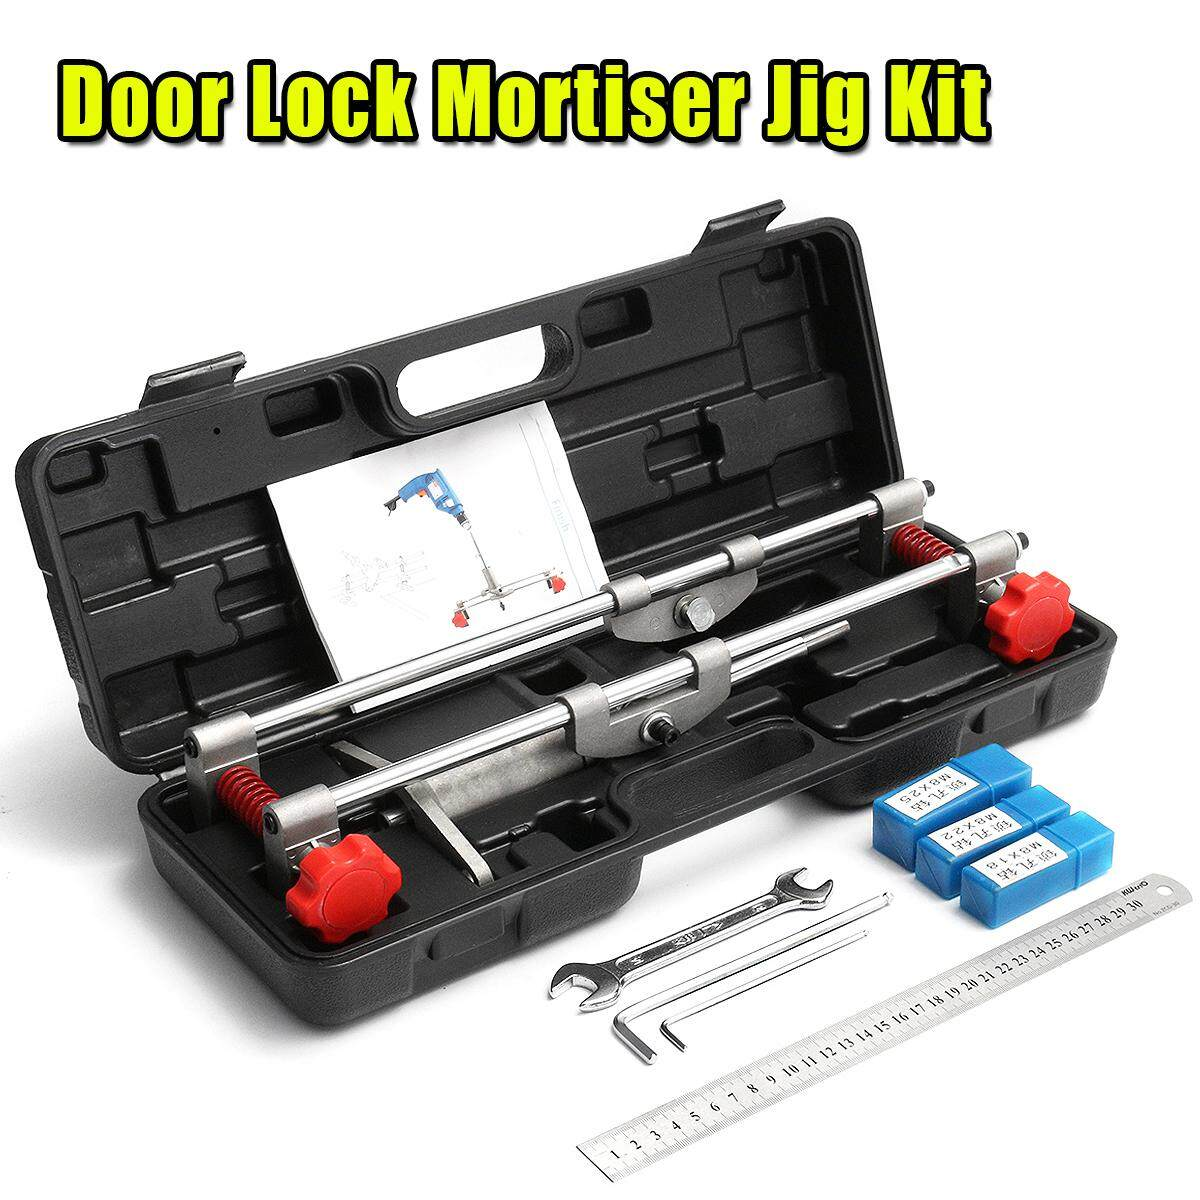 8Pcs Mortice Door Fitting Jig Lock Mortiser DBB Key JIG1 With 3 Cutters & Ruler